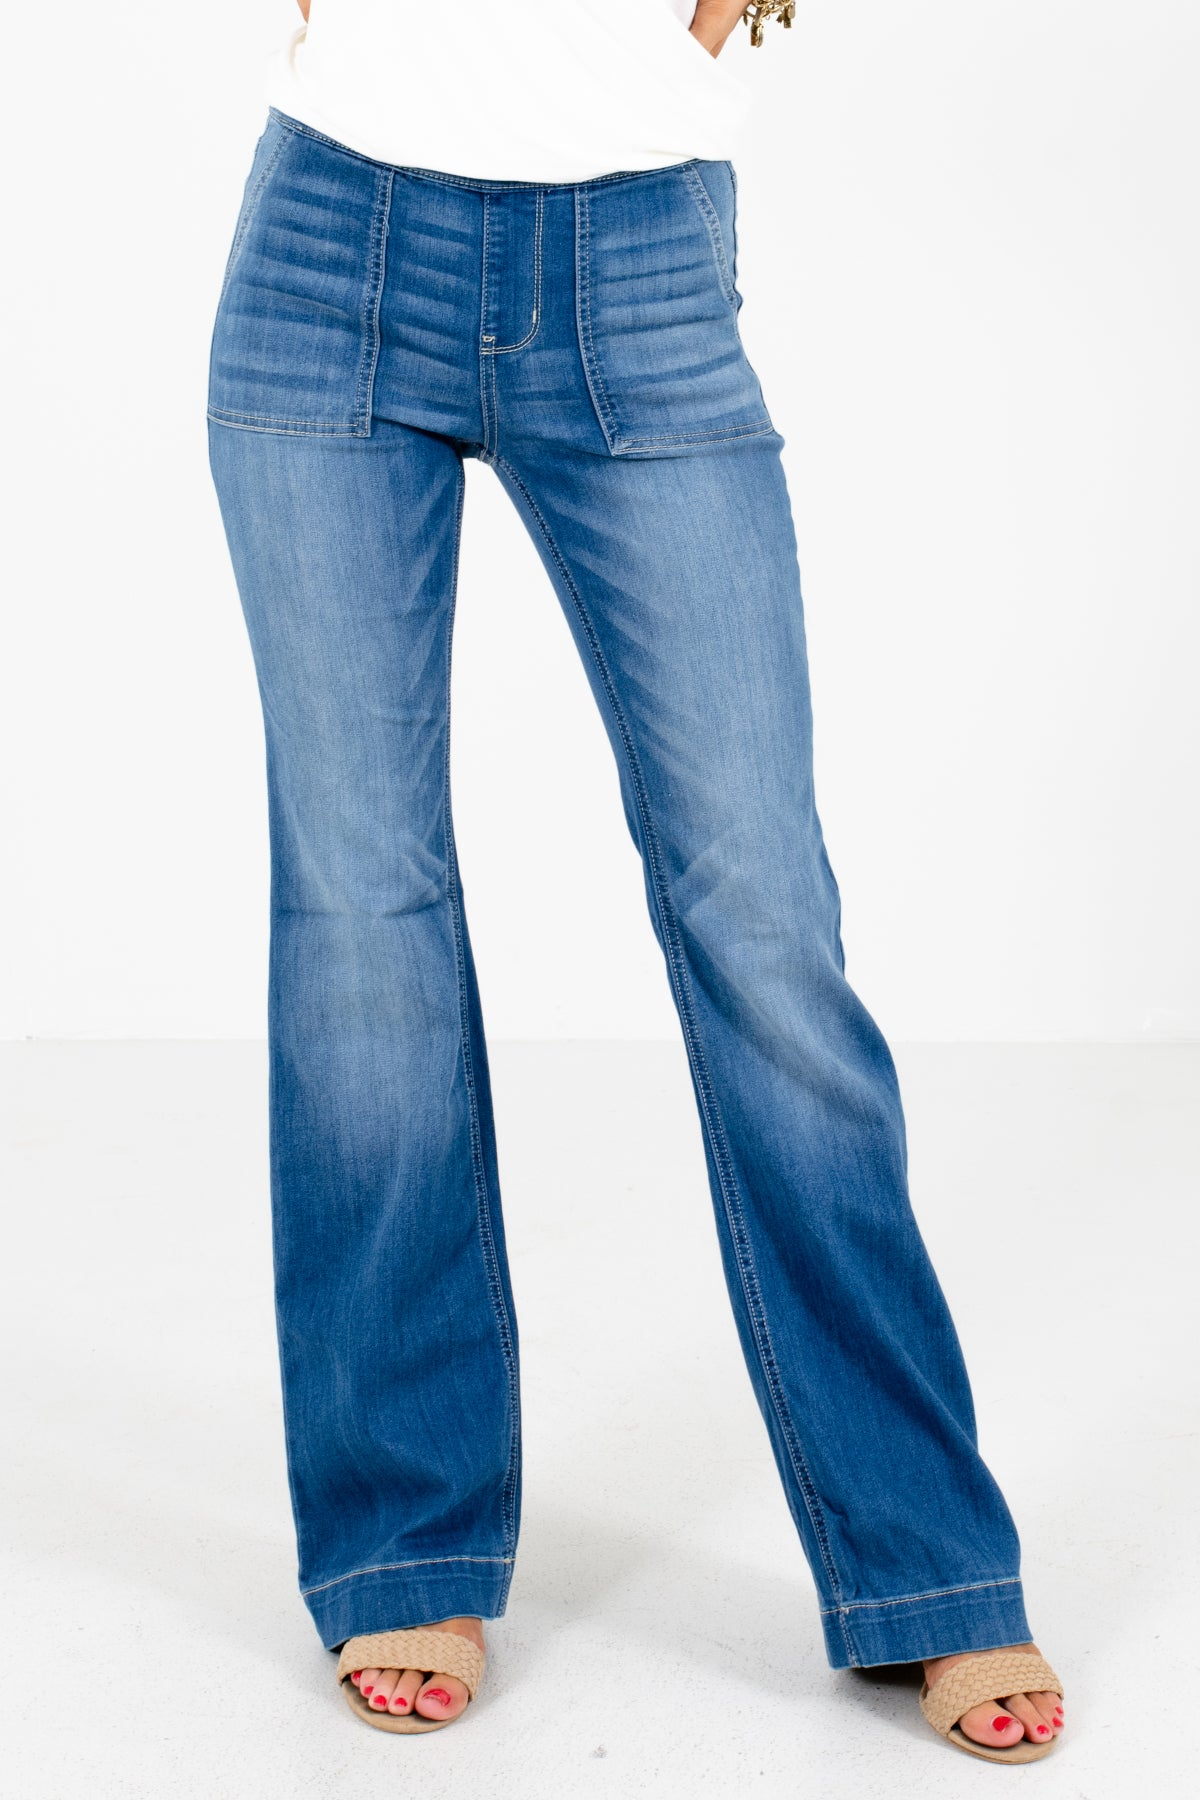 Blue Flare Style Boutique Jeggings for Women